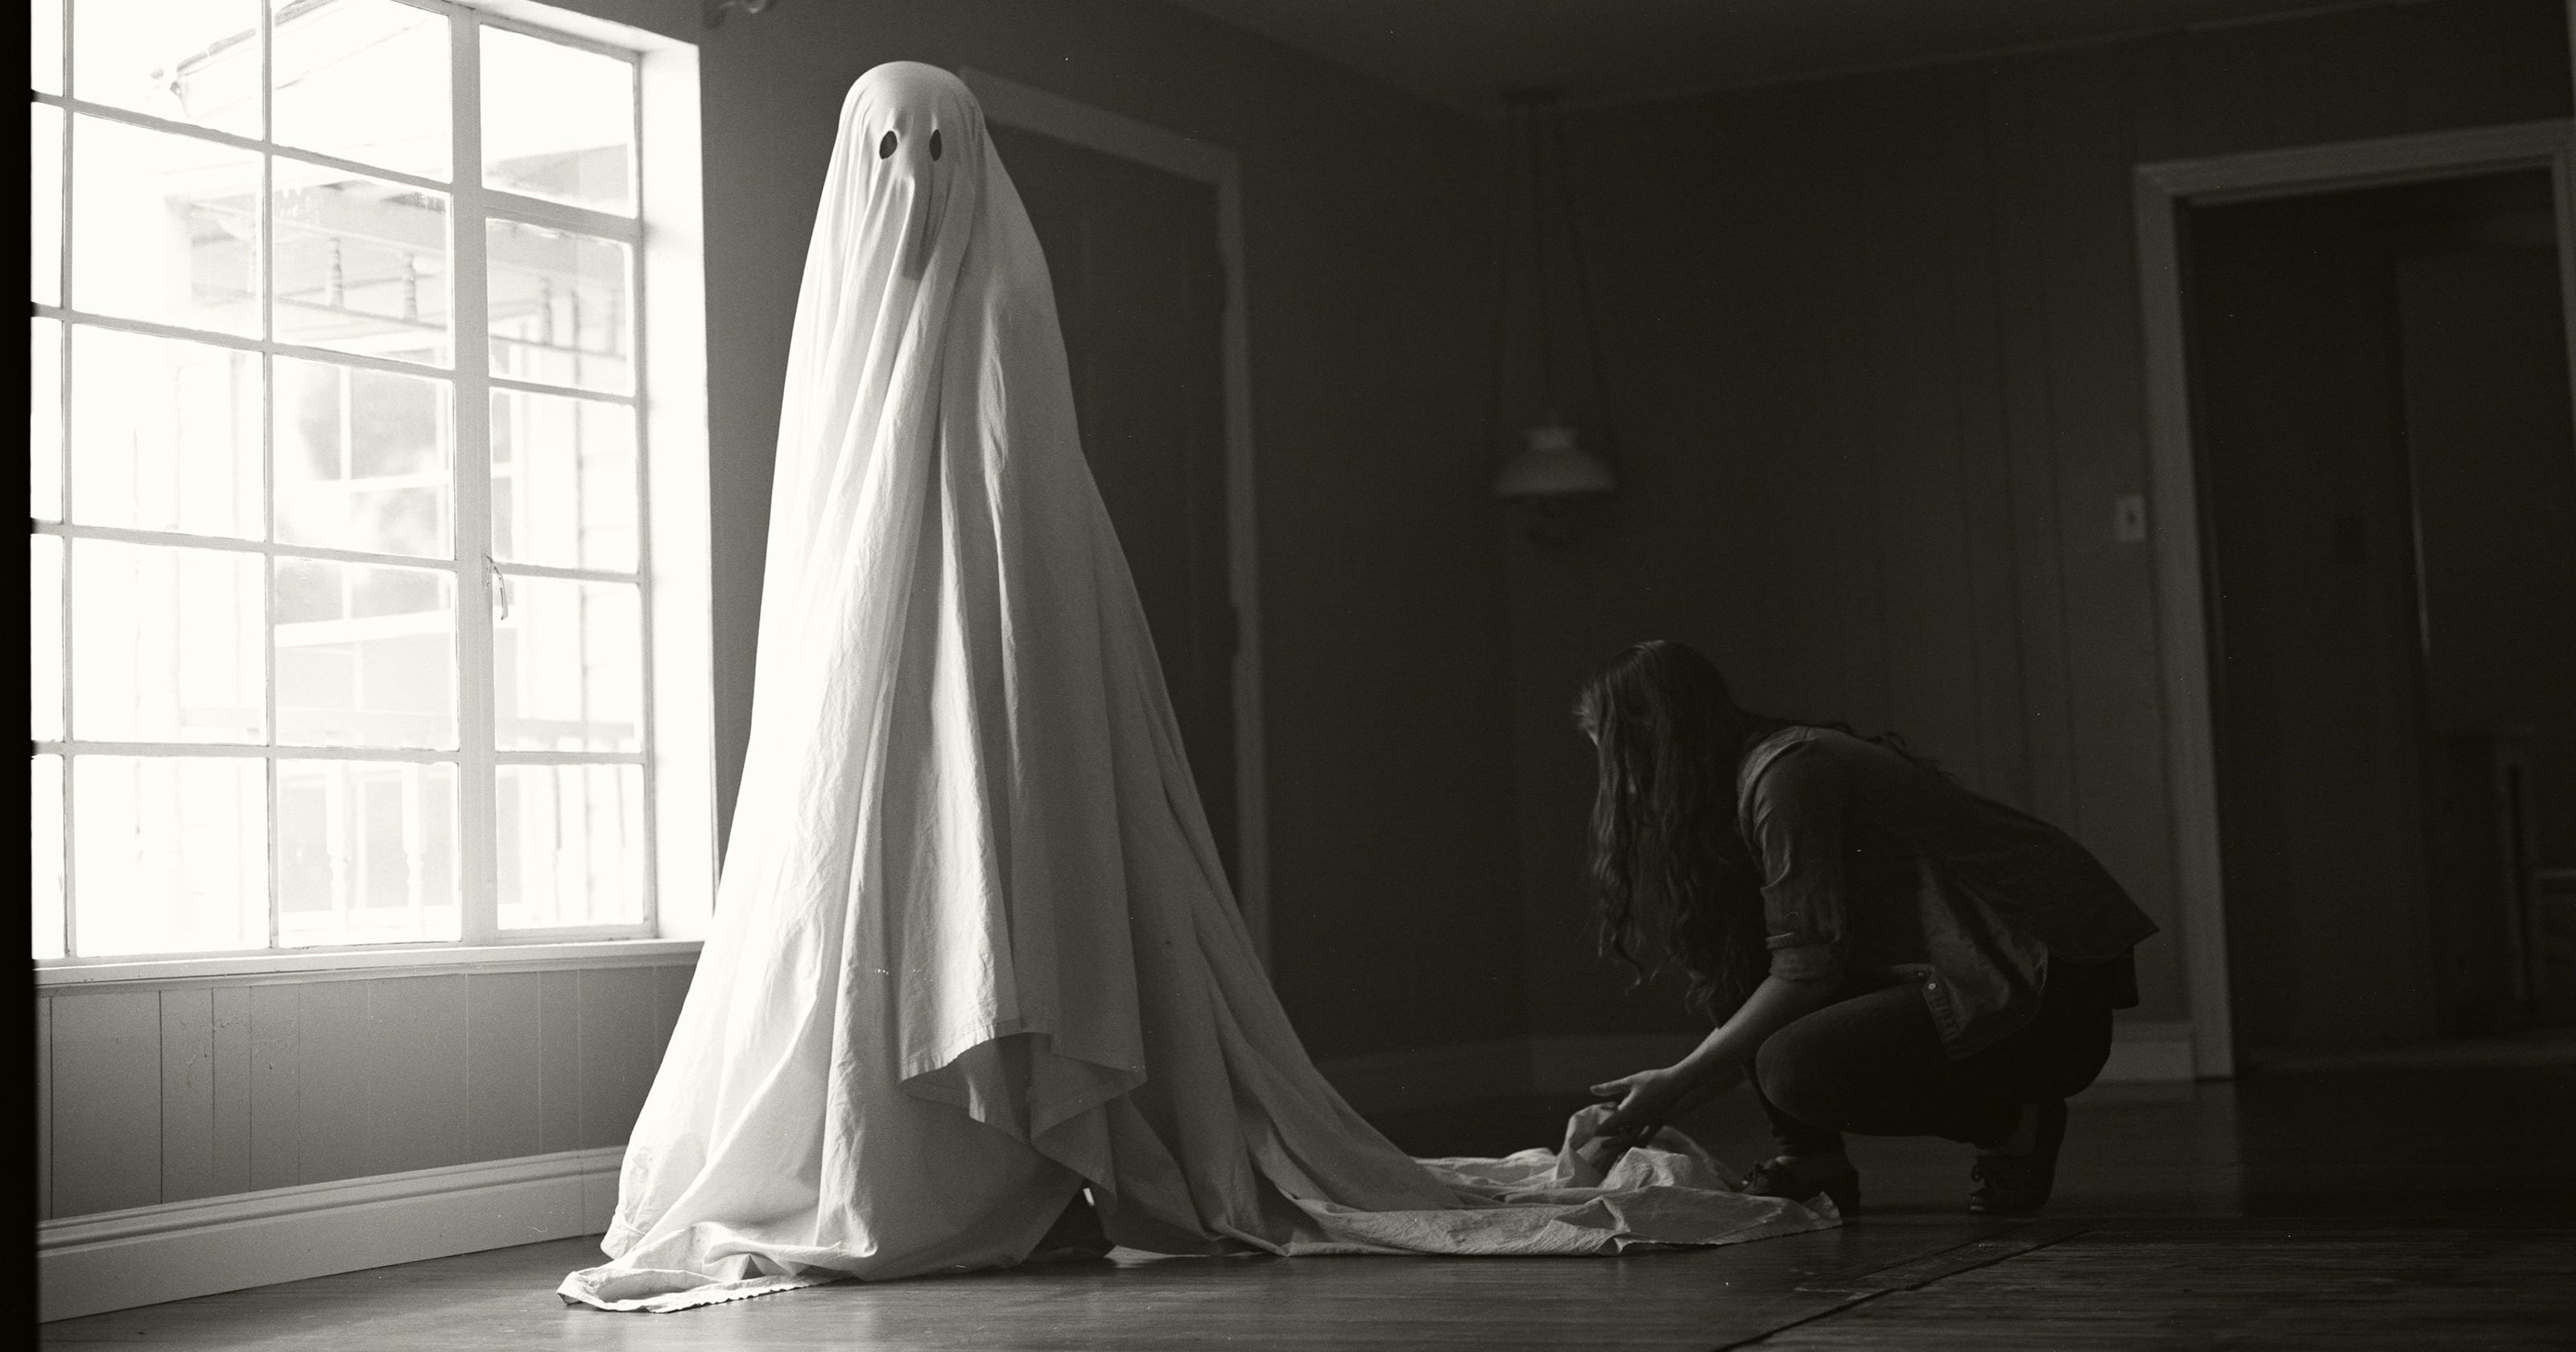 Casey Affleck's 'Ghost Story' costume required more than a sheet